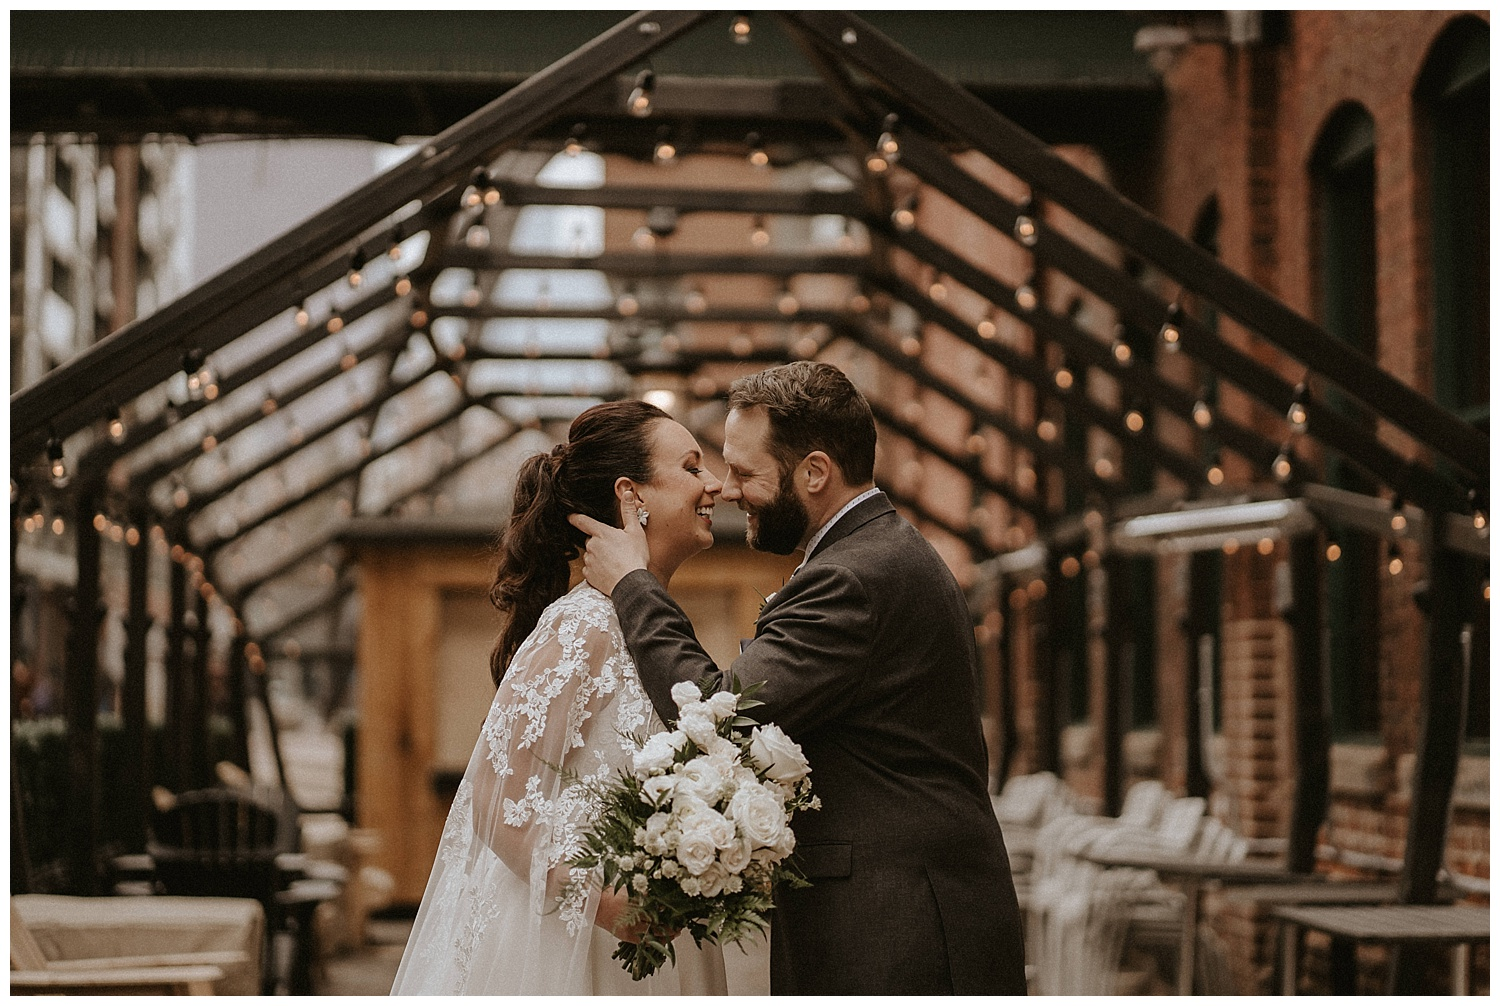 Katie Marie Photography | Archeo Wedding Arta Gallery Wedding | Distillery District Wedding | Toronto Wedding Photographer | Hamilton Toronto Ontario Wedding Photographer |_0029.jpg